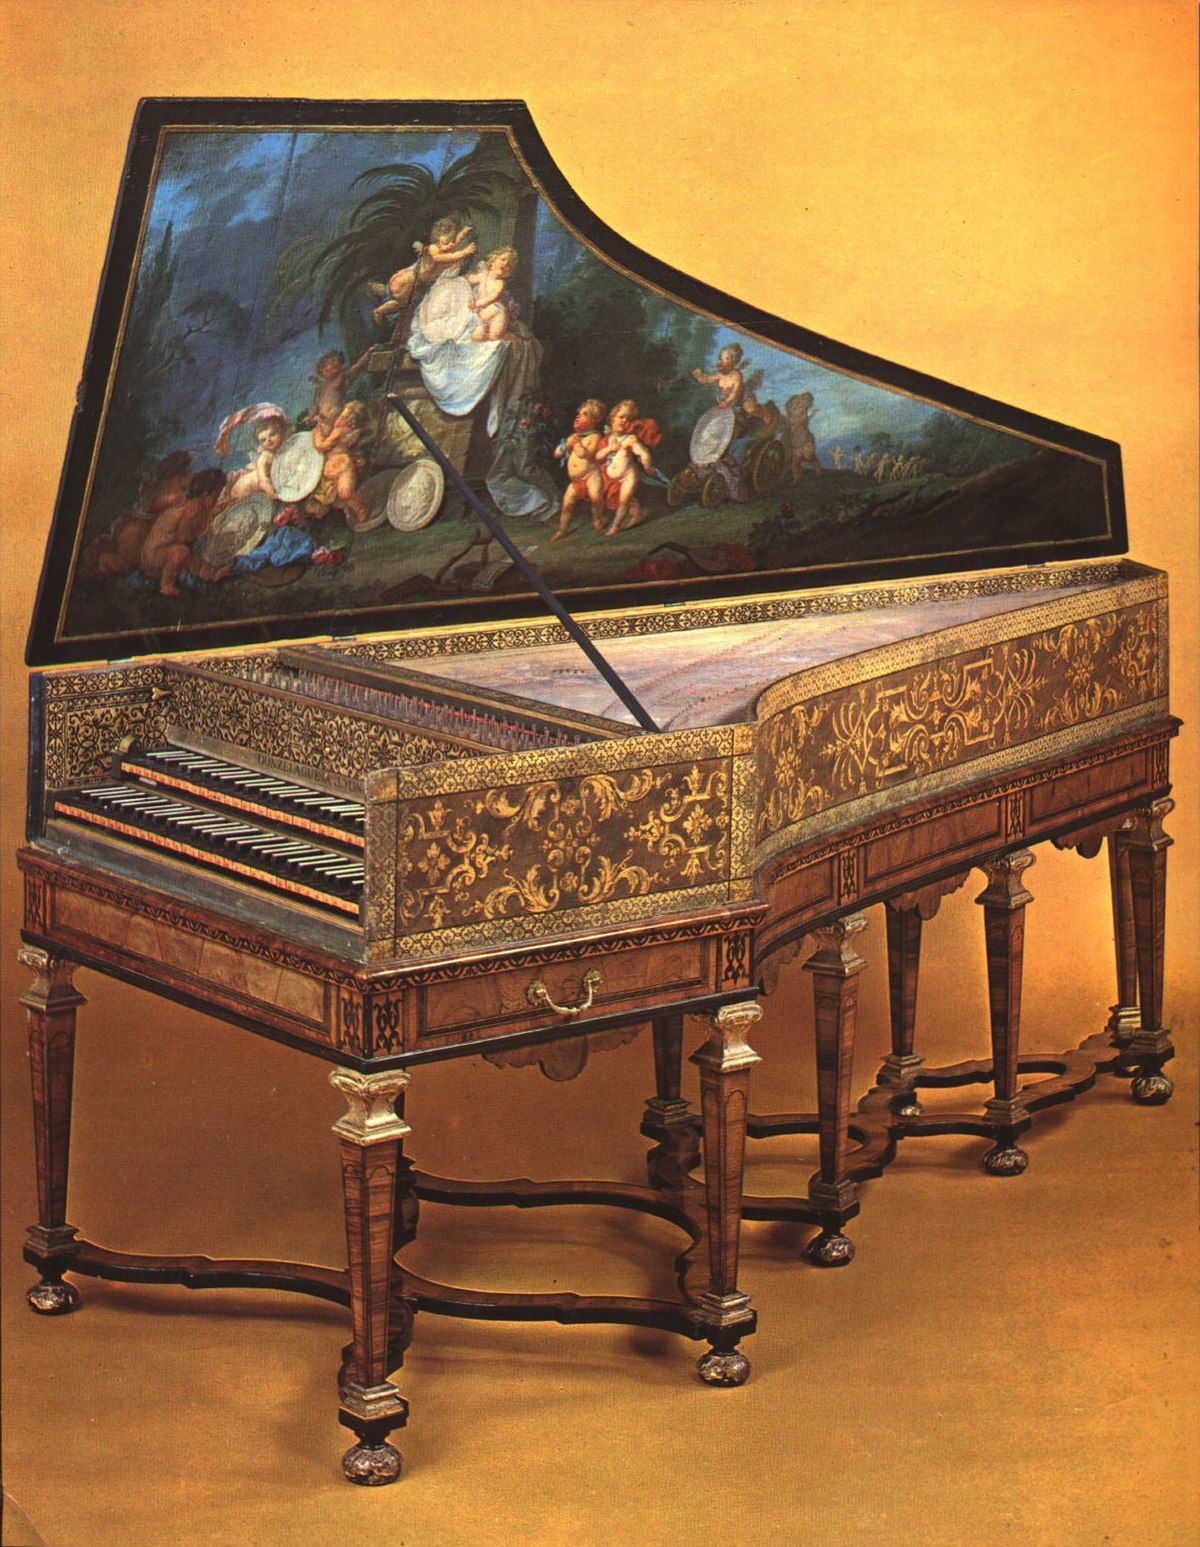 Donzelague (harpsichord makers) - Wikipedia